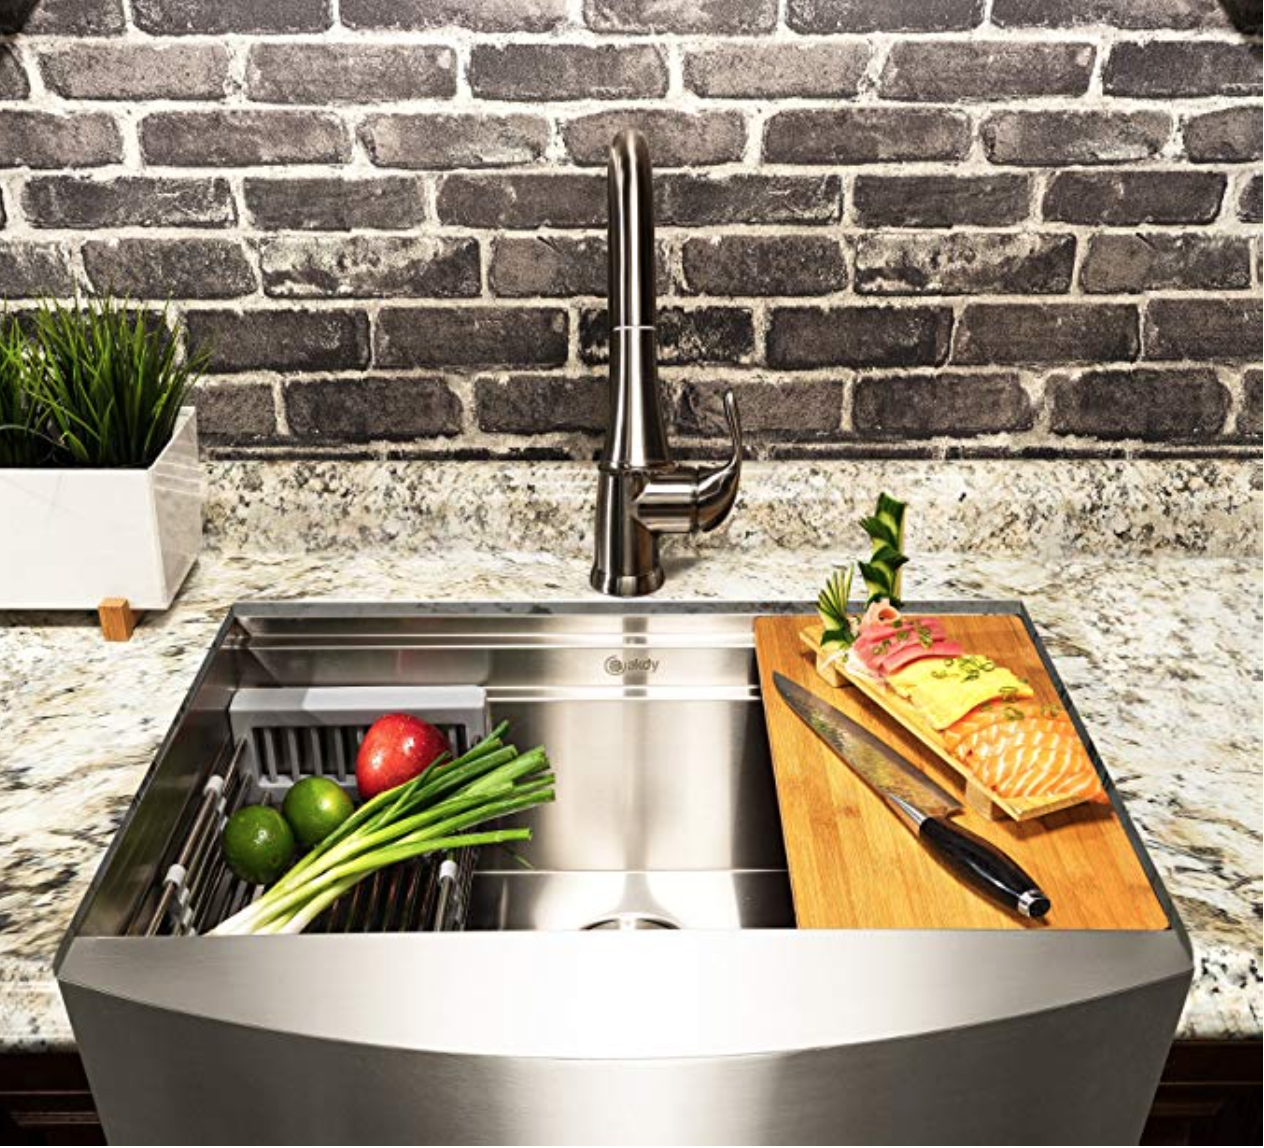 Apron/Farmhouse Stainless Steel Kitchen Sink